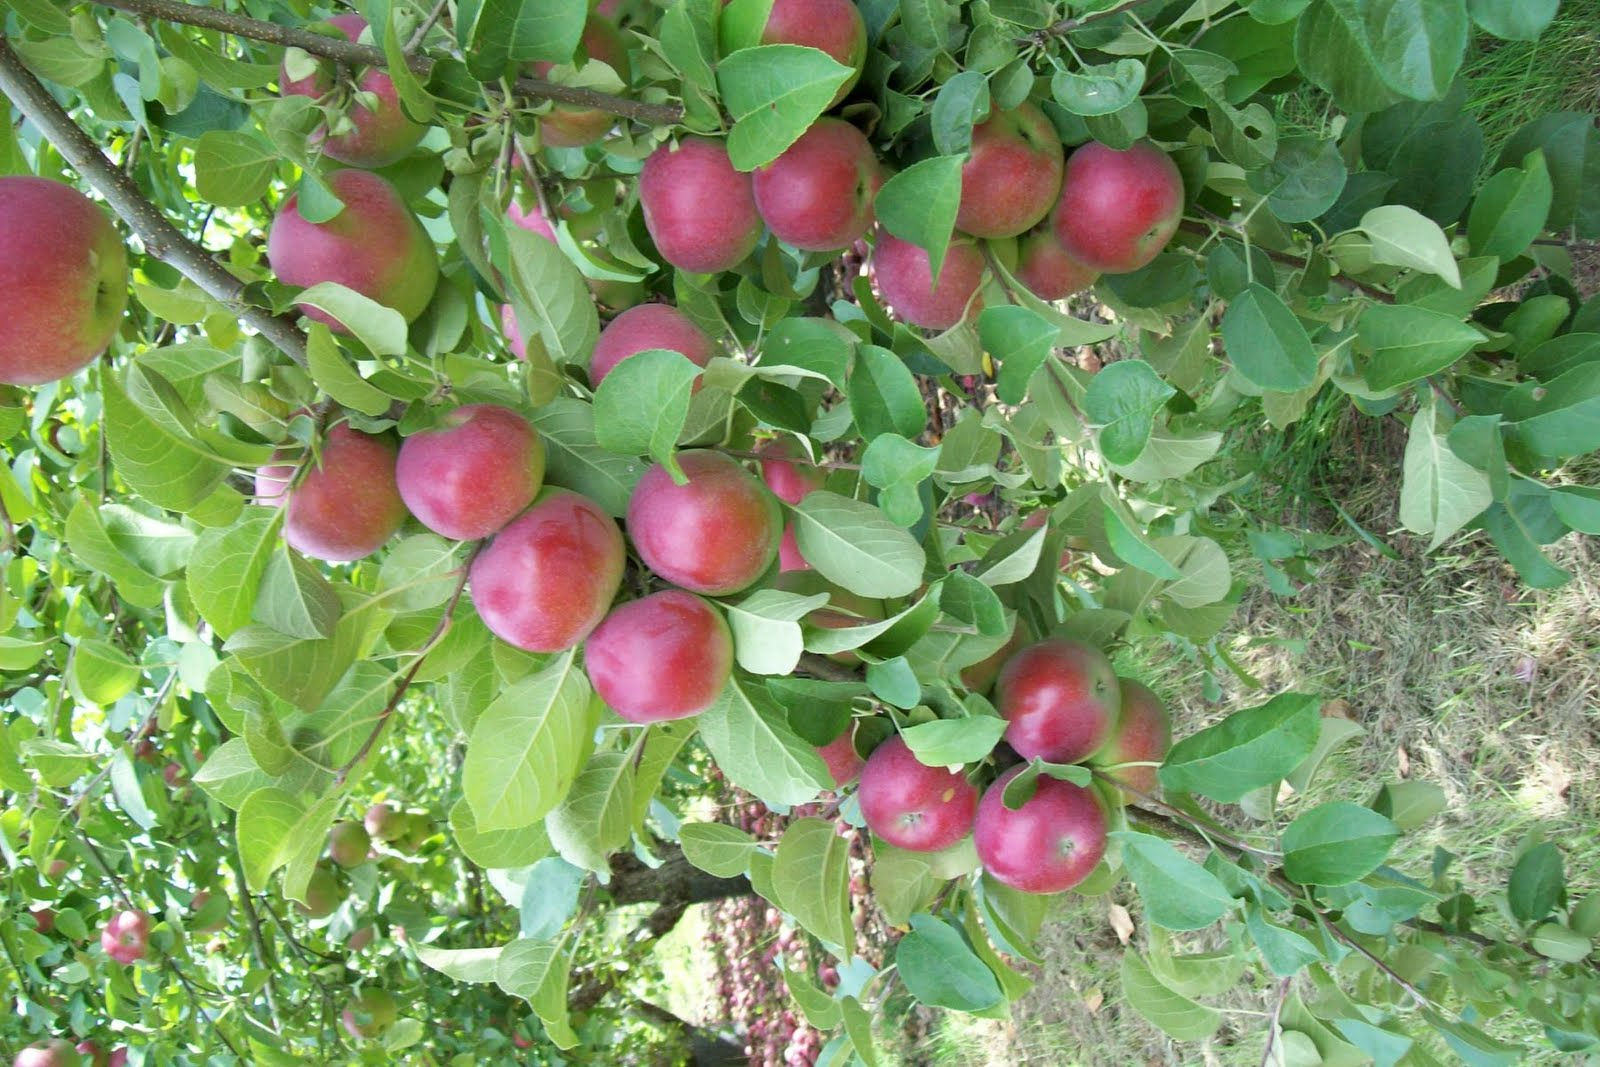 plant a tree save the planet one tree at a time apple trees will bear